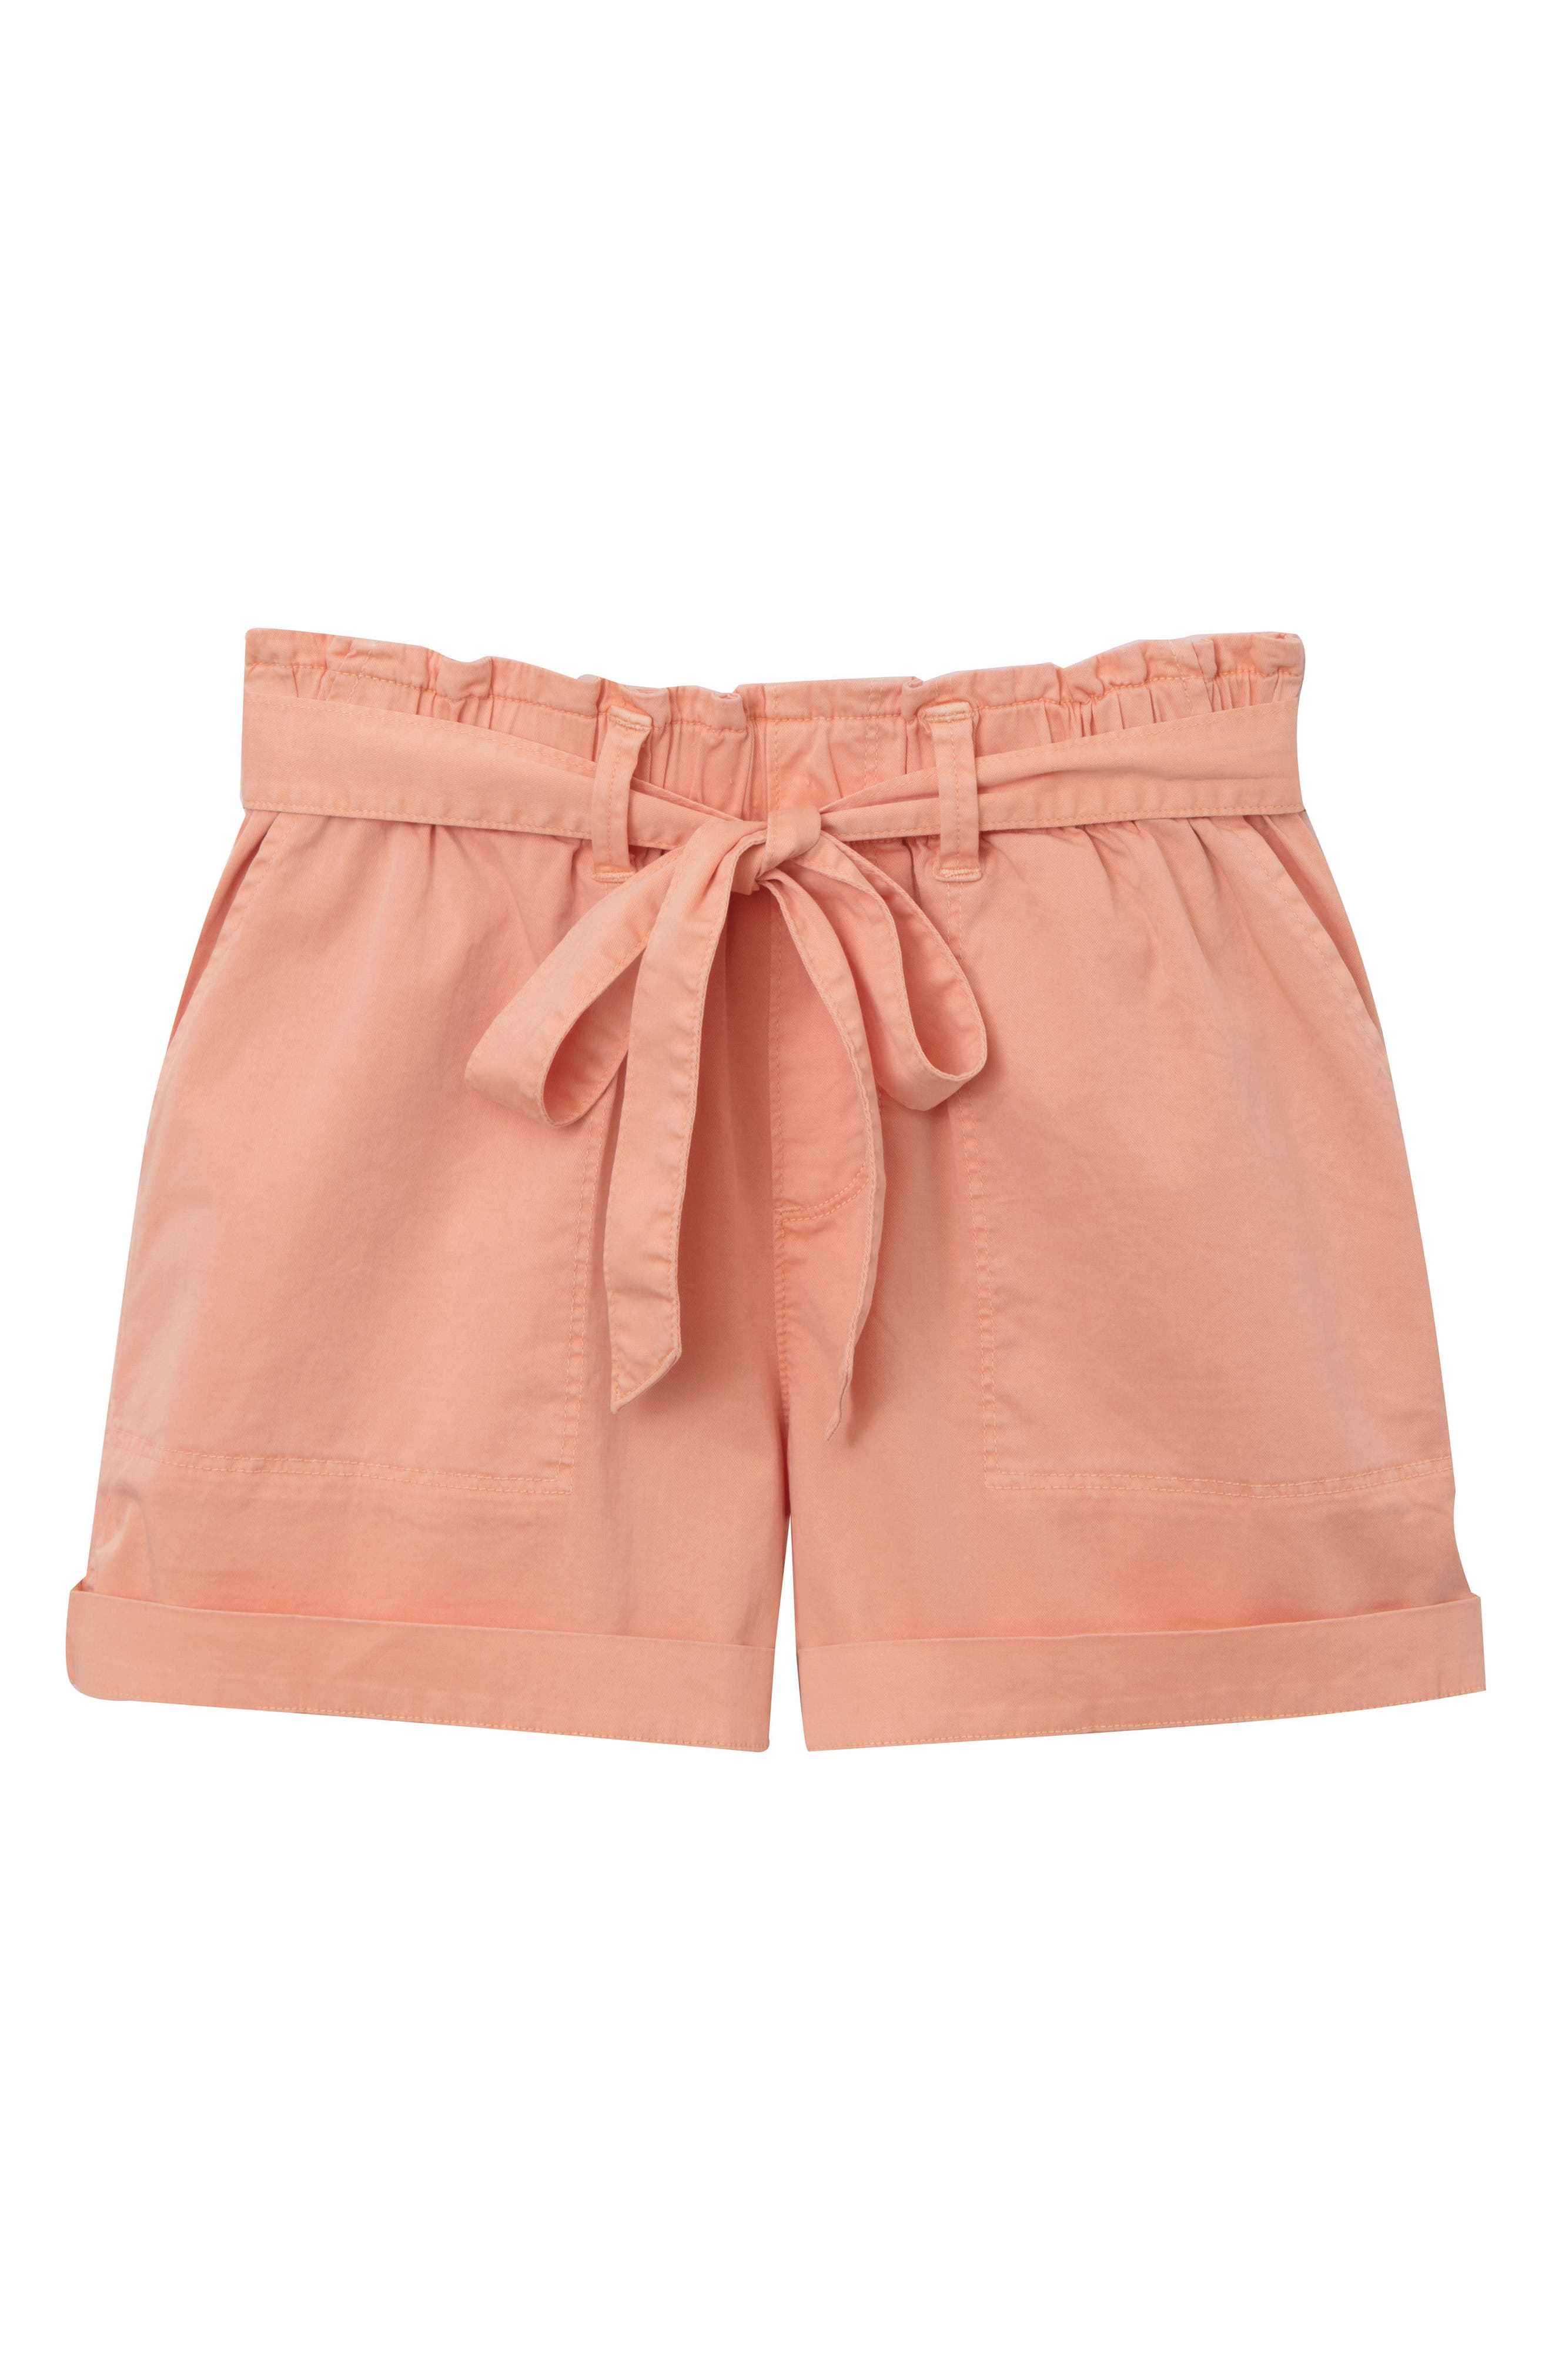 Daydreamer Shorts,                             Alternate thumbnail 12, color,